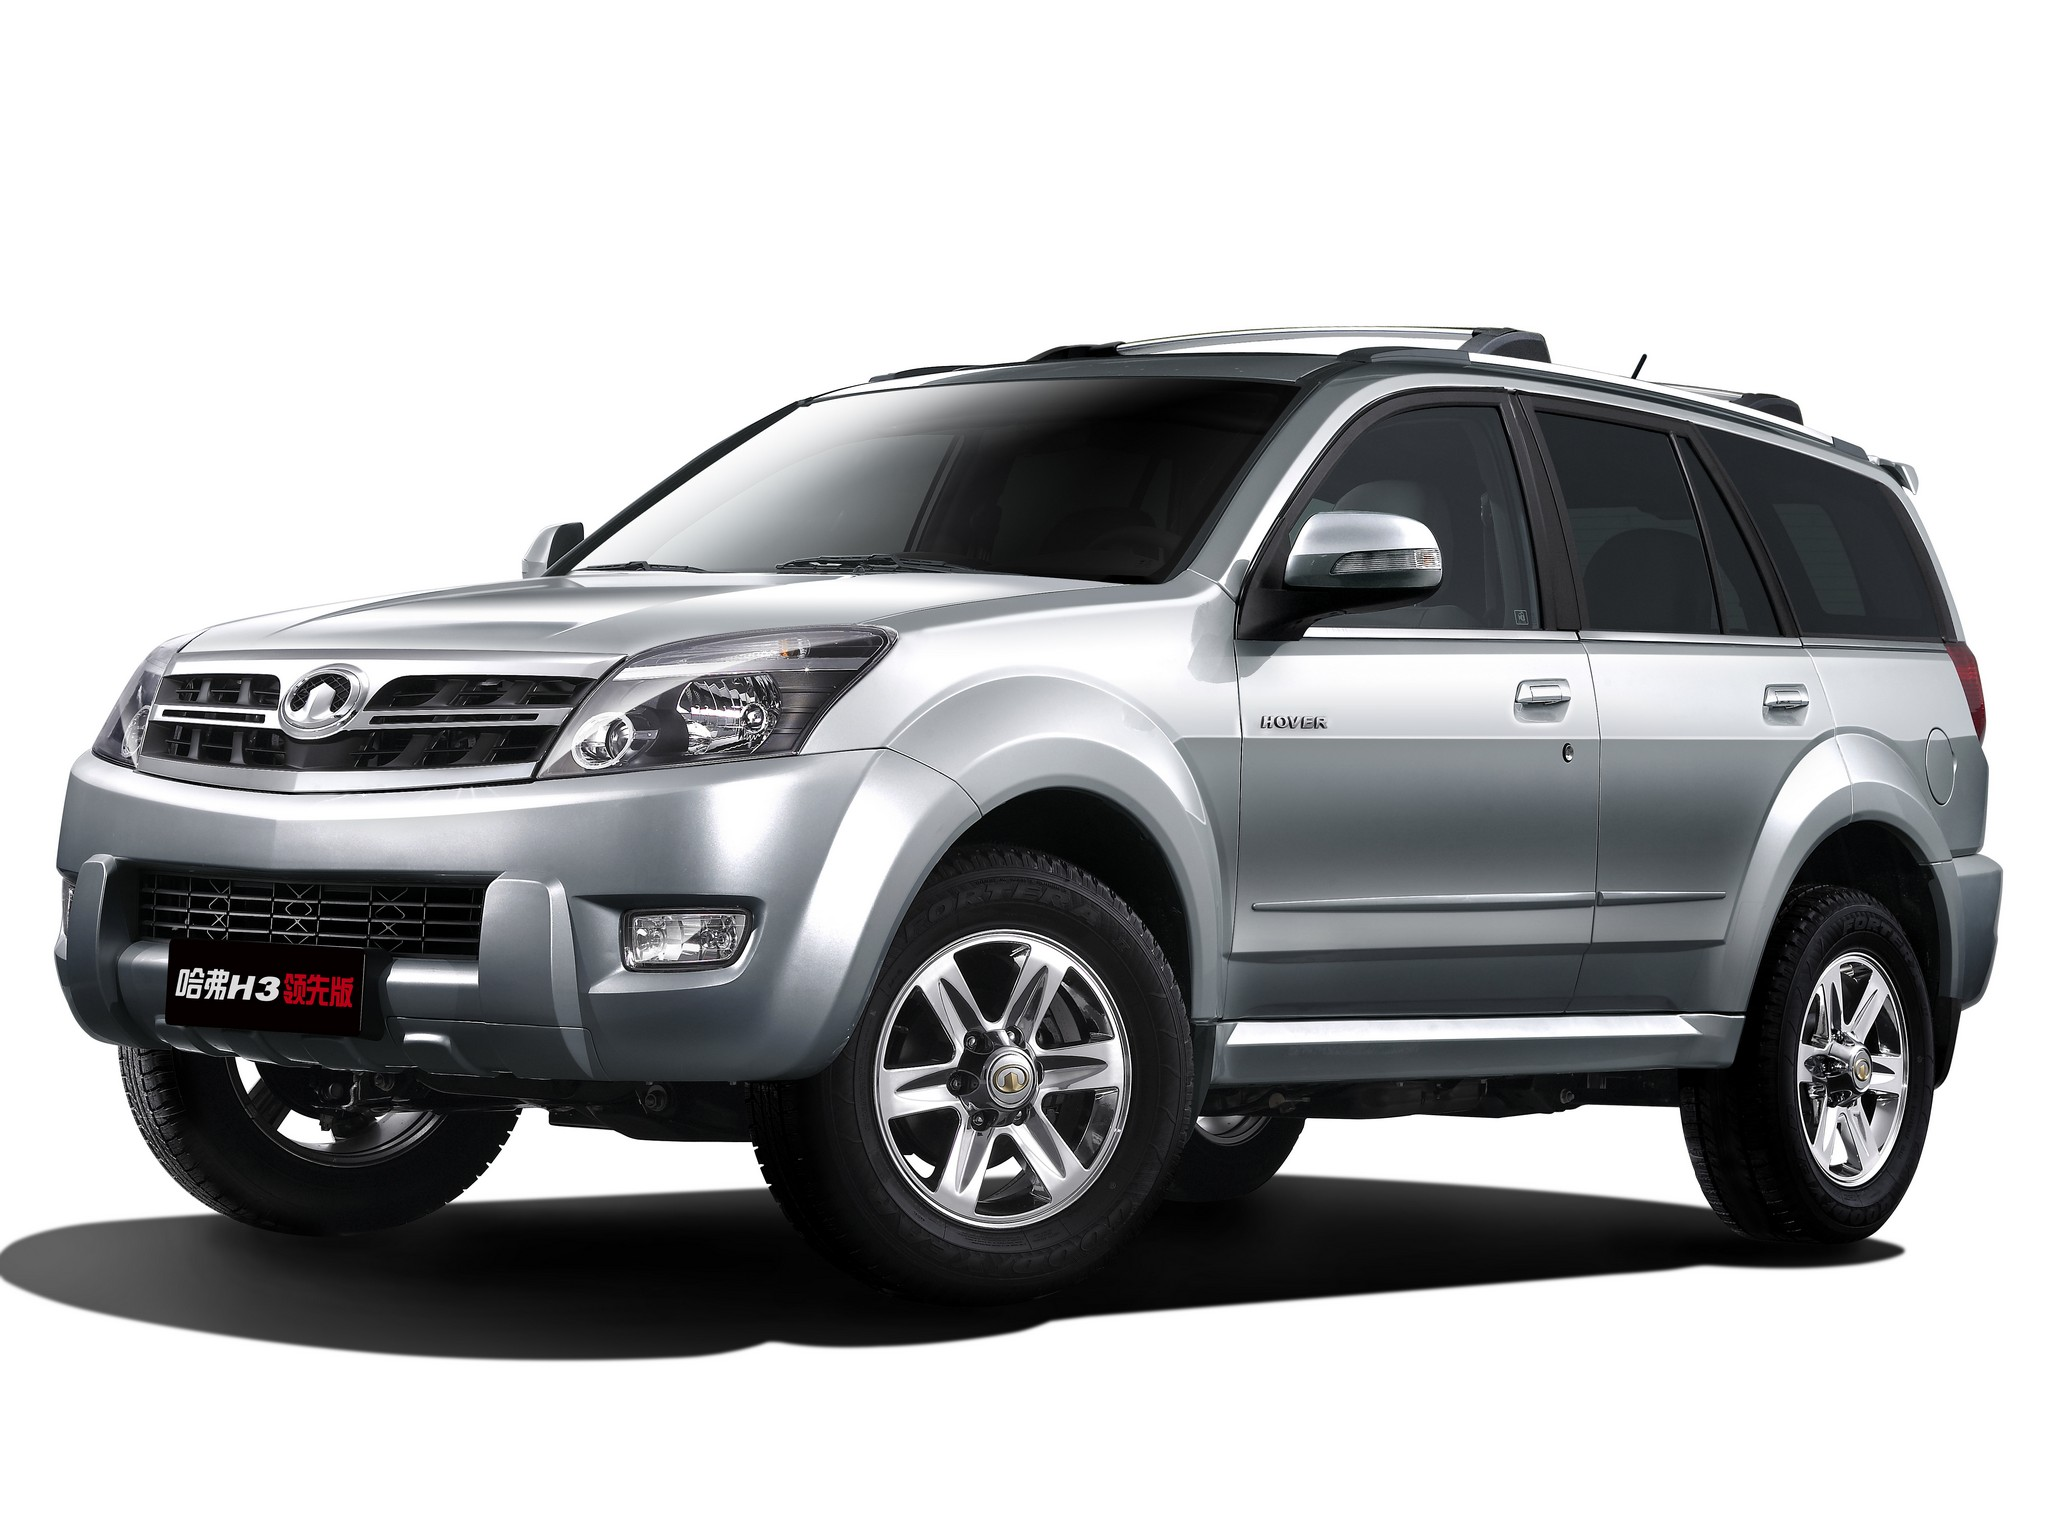 Pictures of great wall hover h3 2013